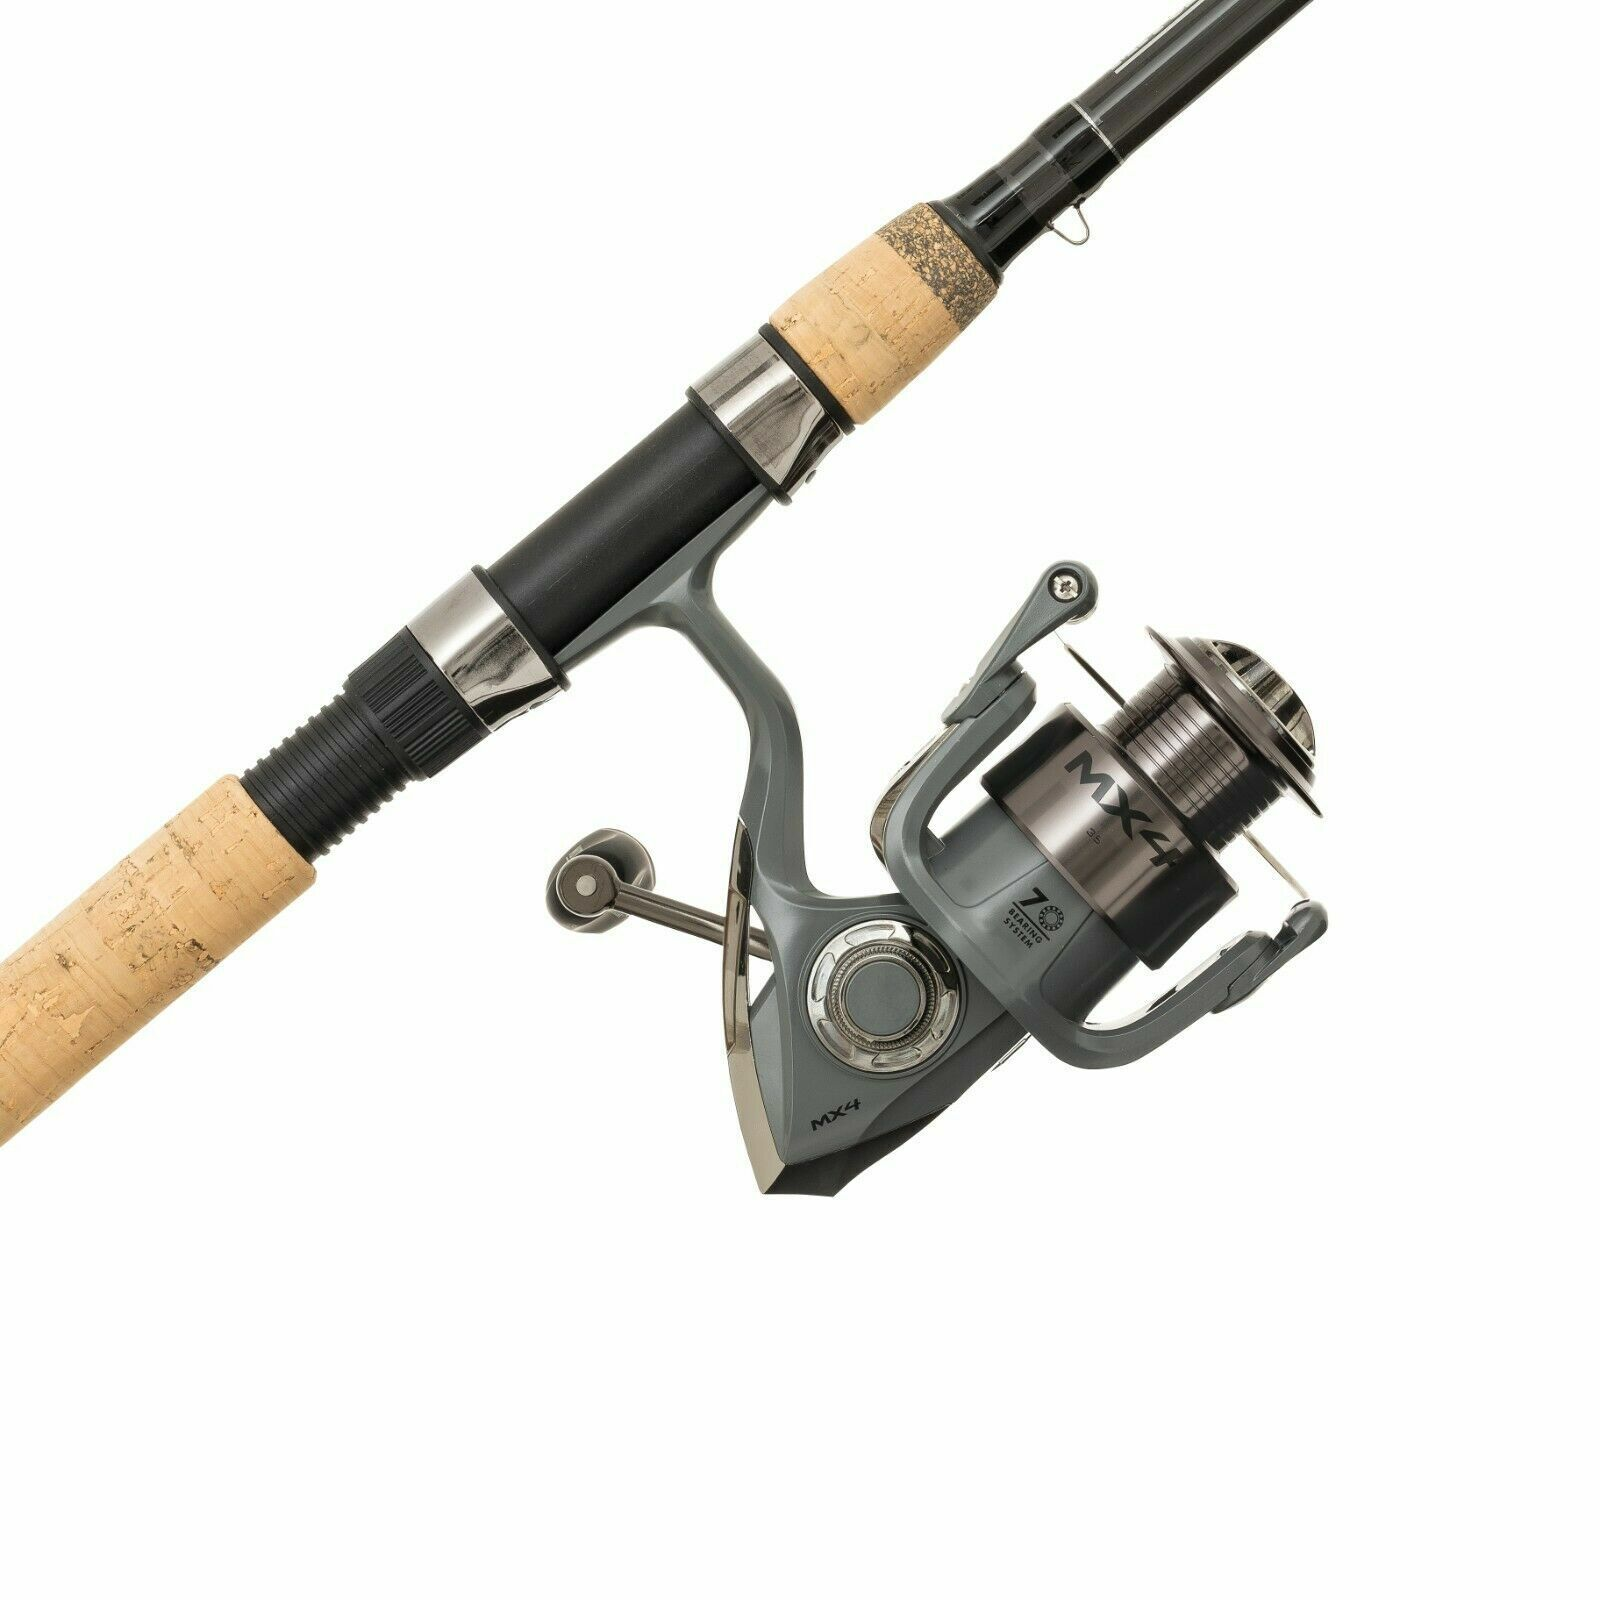 MITCHELL MAX4 SP CBO H SPNNING ROD 9ft (2.74 m) 20-60gr